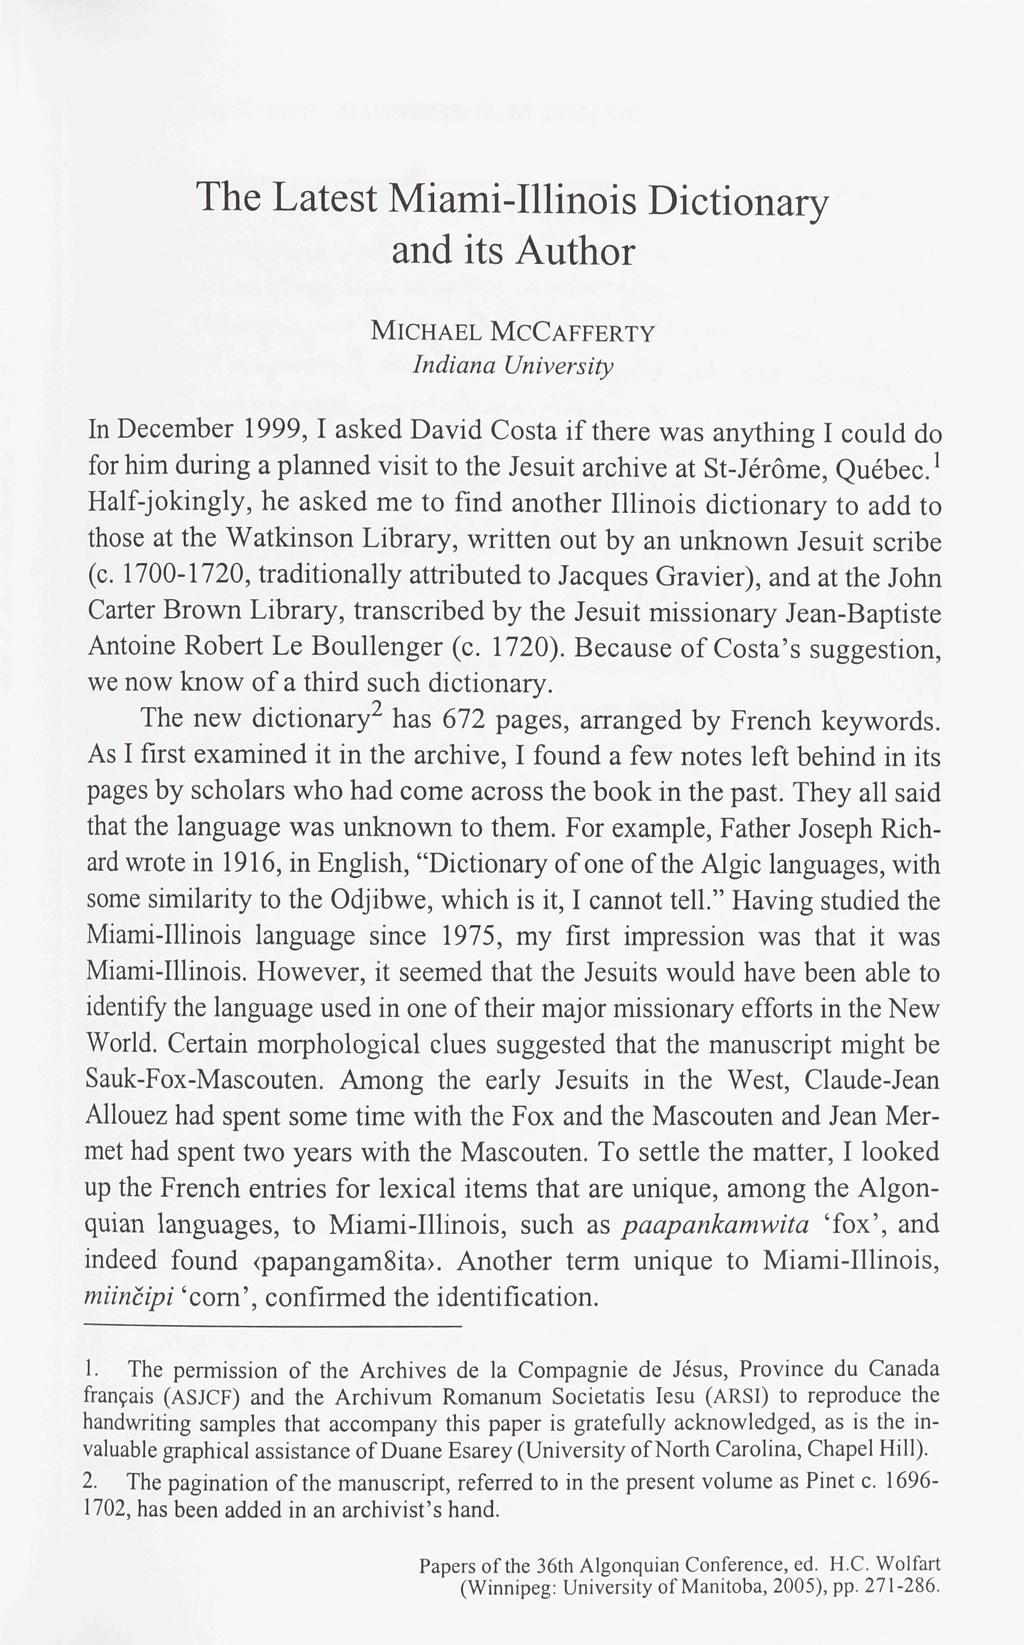 The Latest Miami-Illinois Dictionary and its Author MICHAEL MCCAFFERTY Indiana University In December 1999,1 asked David Costa if there was anything I could do for him during a planned visit to the